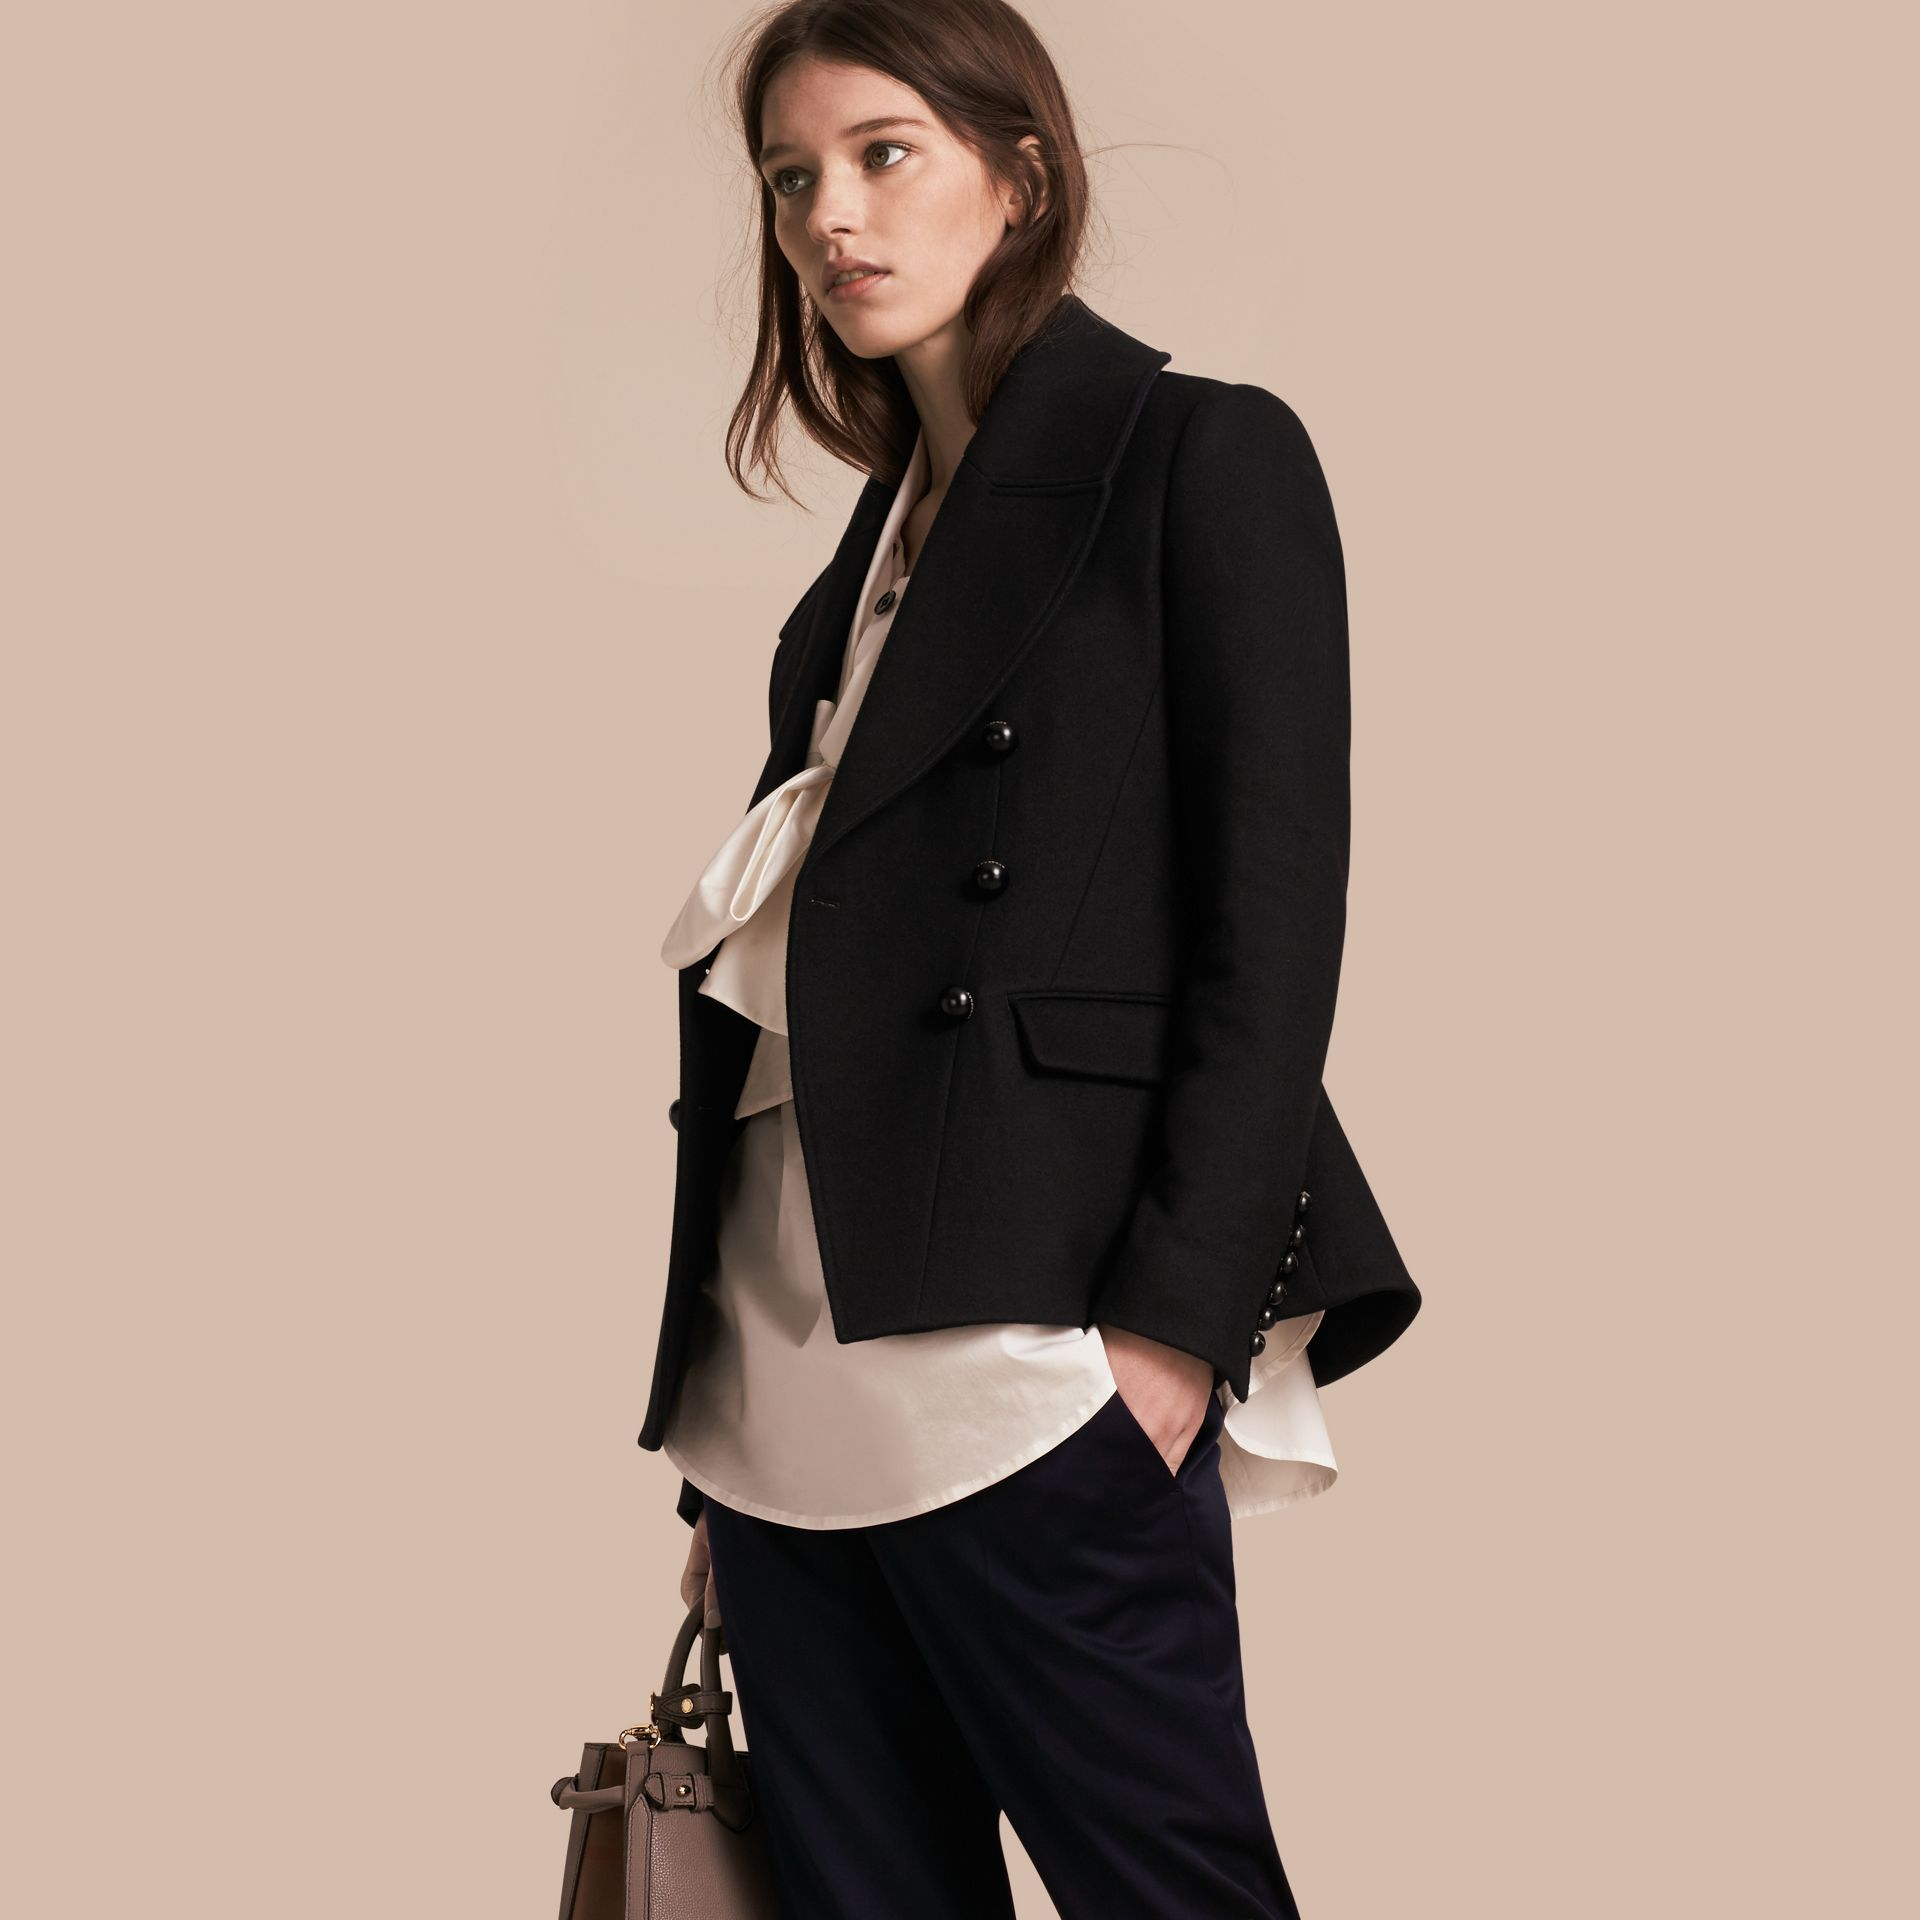 Tailored Wool Blend Jacket in Black - Women | Burberry - gallery image 1